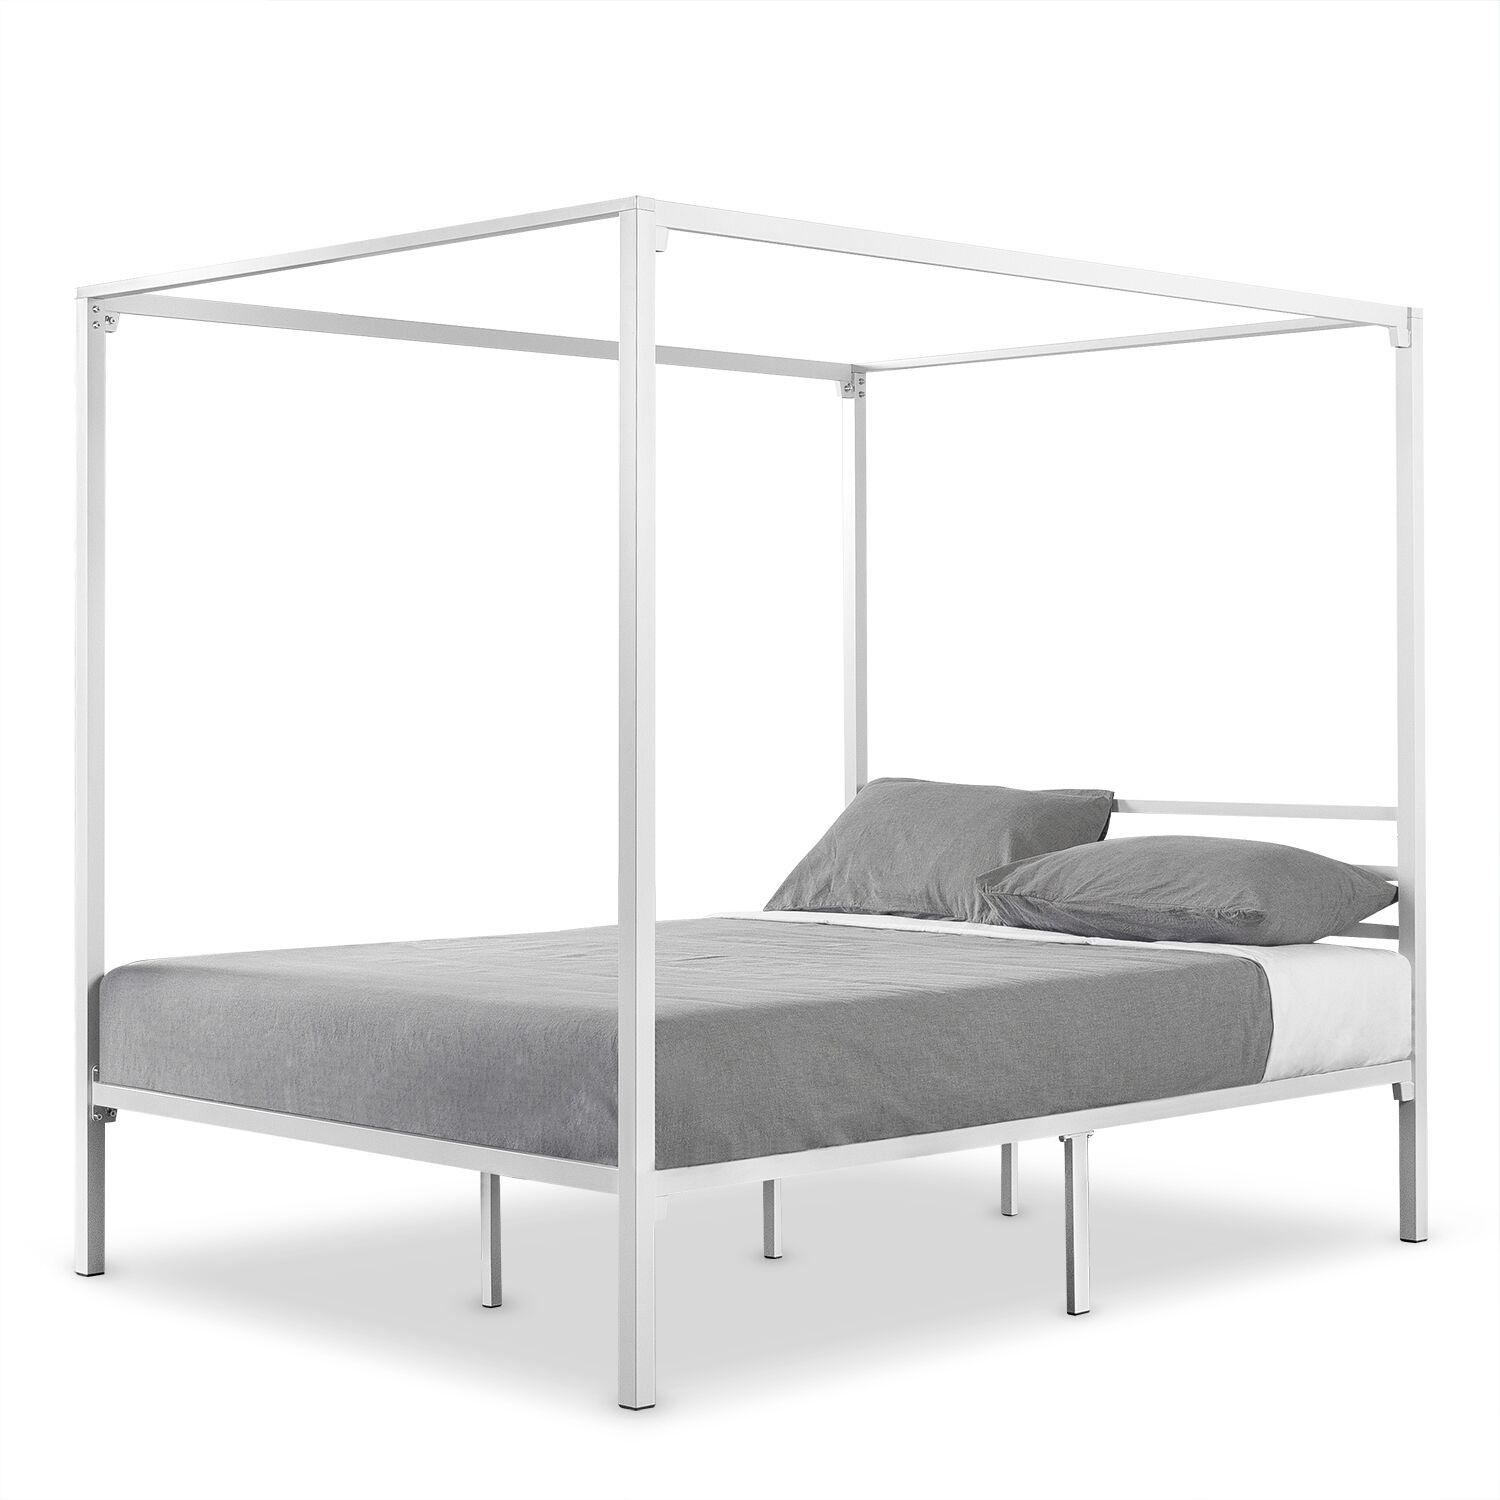 Hubbert Metal Framed Canopy Bed Frame Size: Full